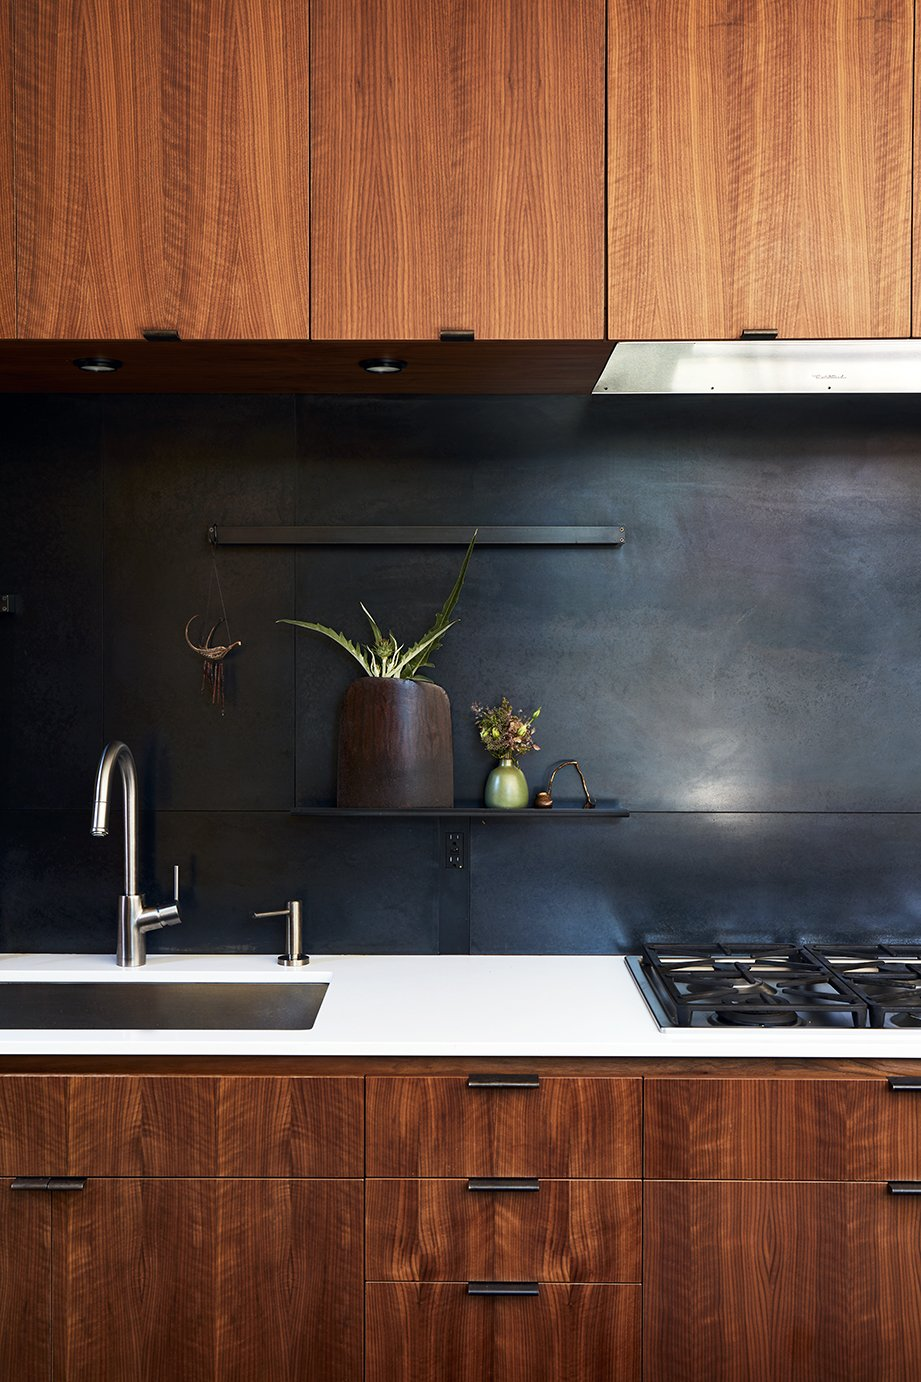 The metal backsplash and drawer pulls were fabricated by 12th Avenue Iron; the cooktop is by Miele. Tagged: Kitchen, Undermount Sink, Wood Cabinet, Metal Backsplashe, and Range.  Photo 5 of 15 in Greener Grass